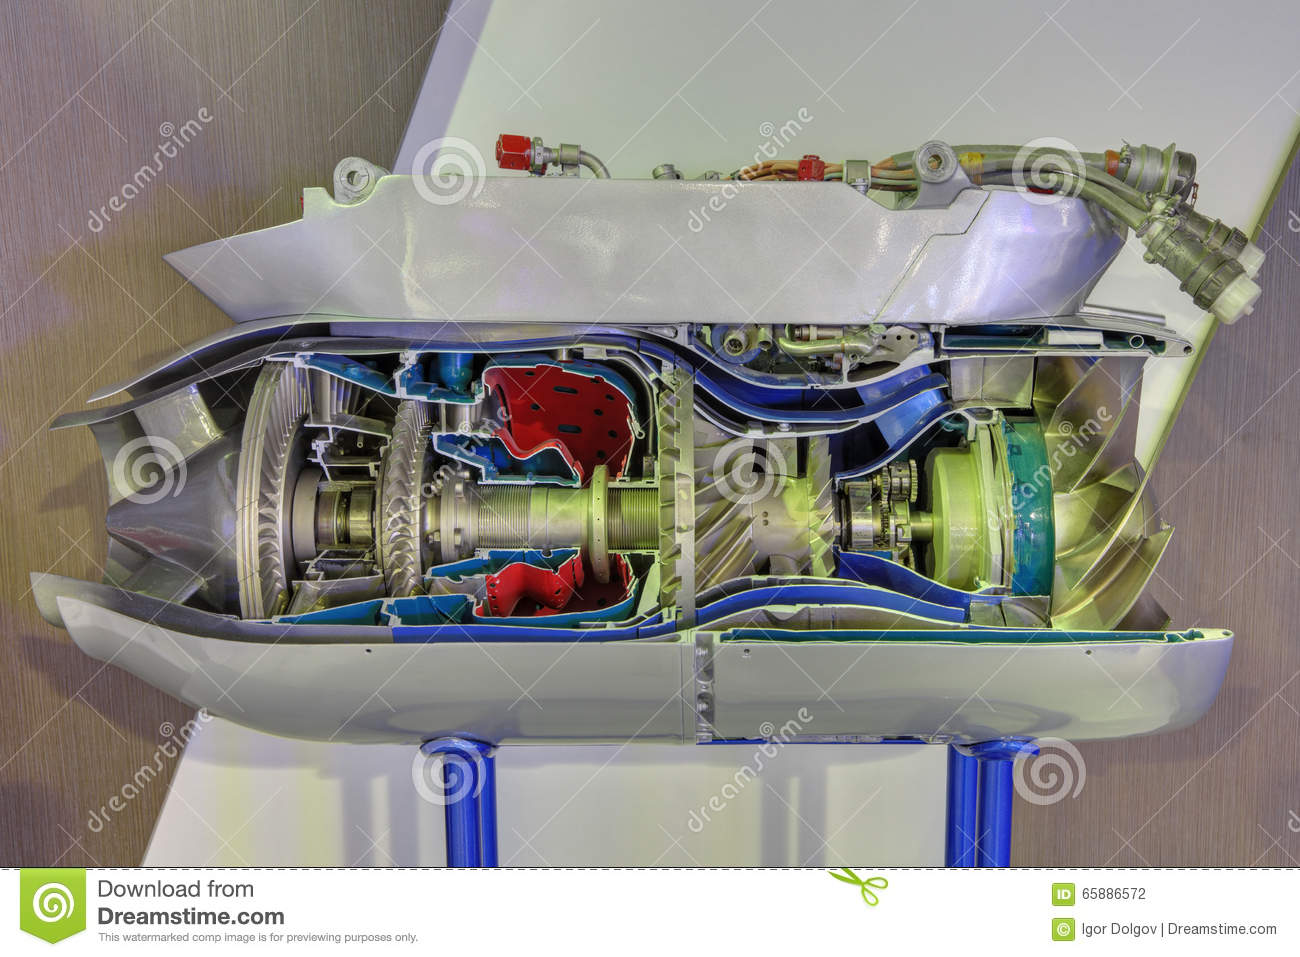 Gas turbine engine stock photo  Image of complexity, complex